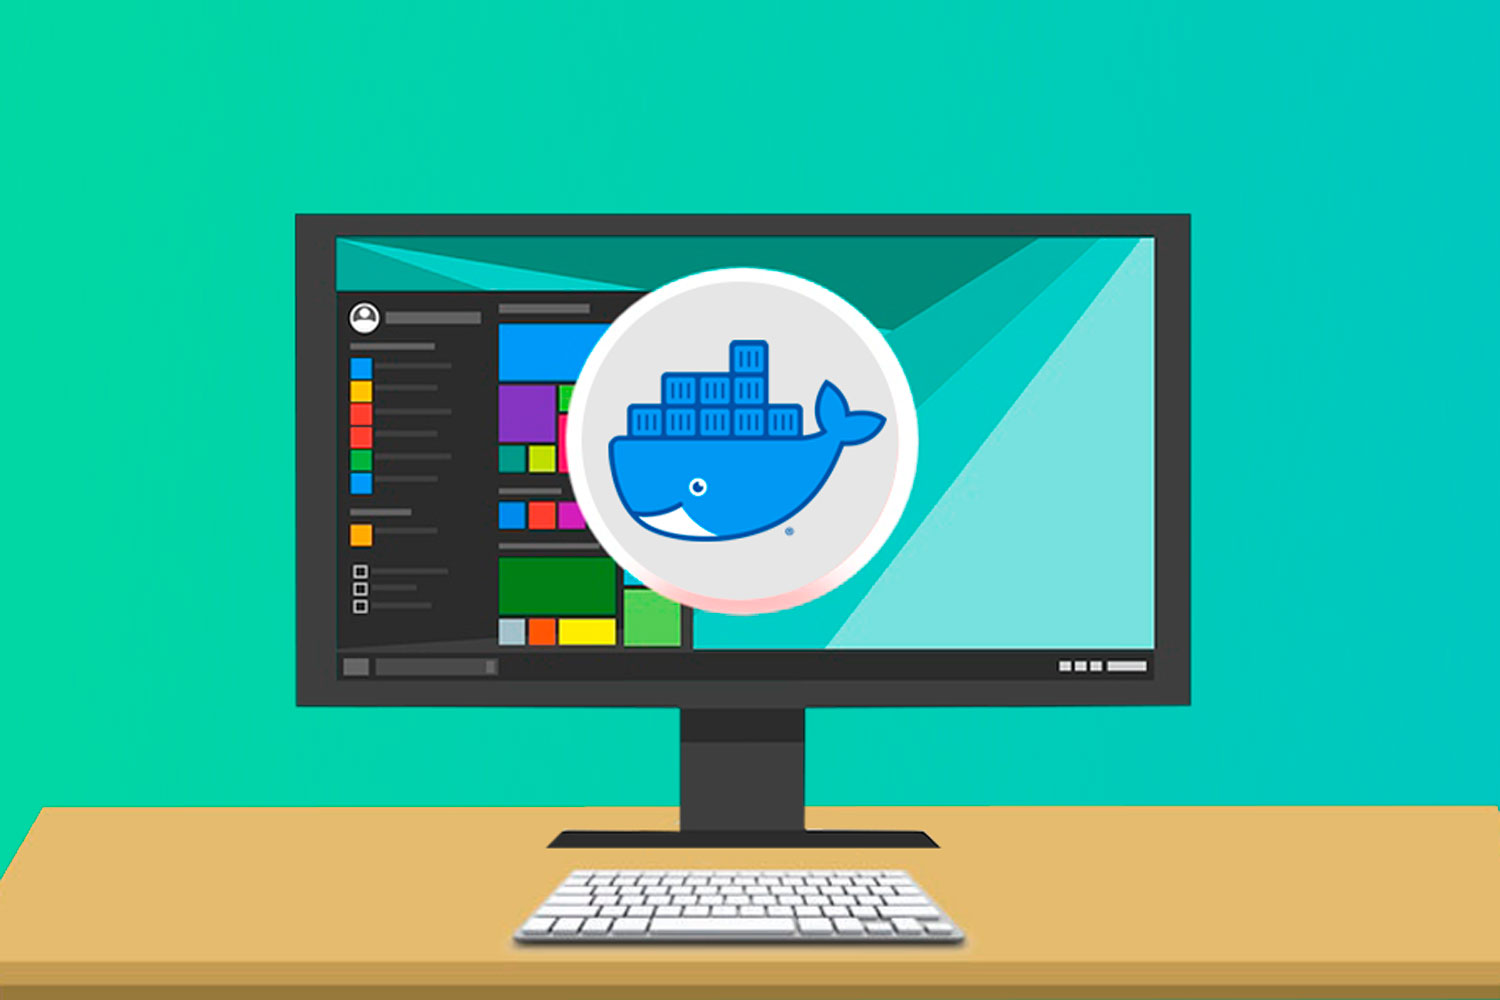 How to install Docker and set up your first container